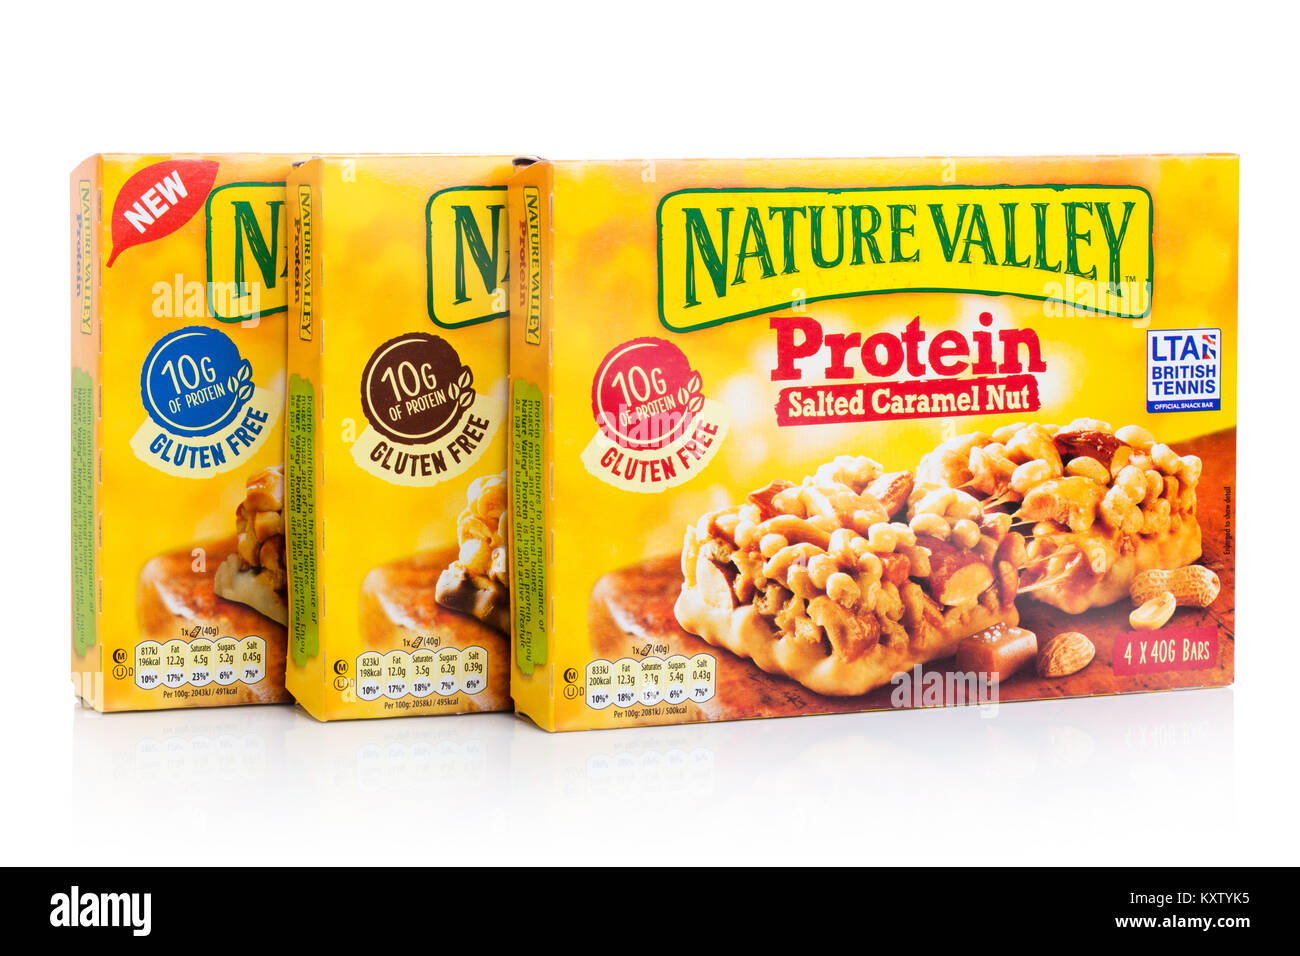 LONDON, UK - JANUARY 02, 2018: Nature Valley crunchy granola protein bars  in a boxes with on white background. - Stock Image